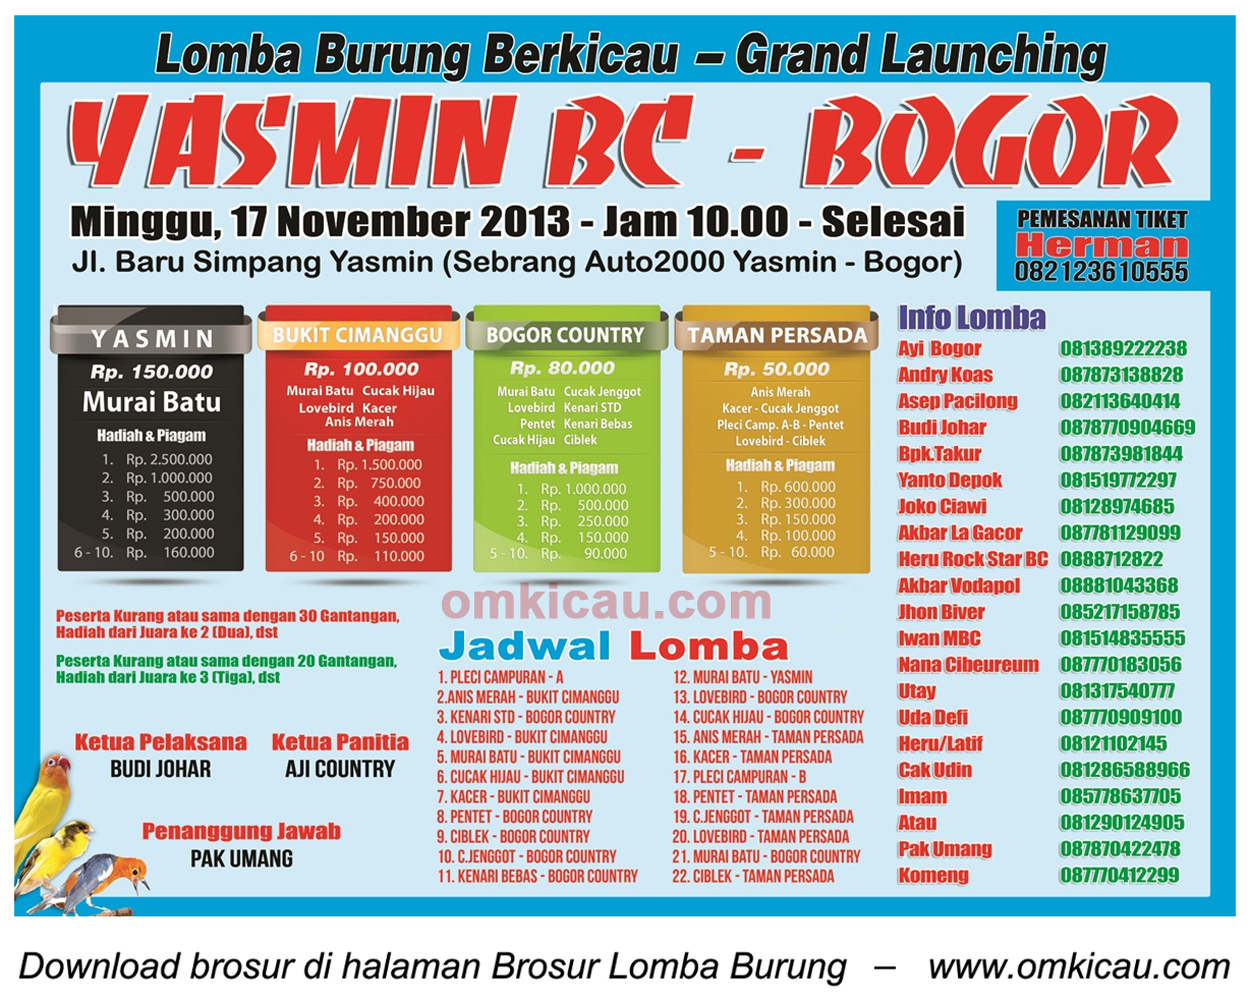 Brosur Lomba Burung Grand Launching Yasmin BC, Bogor, 17 November 2013